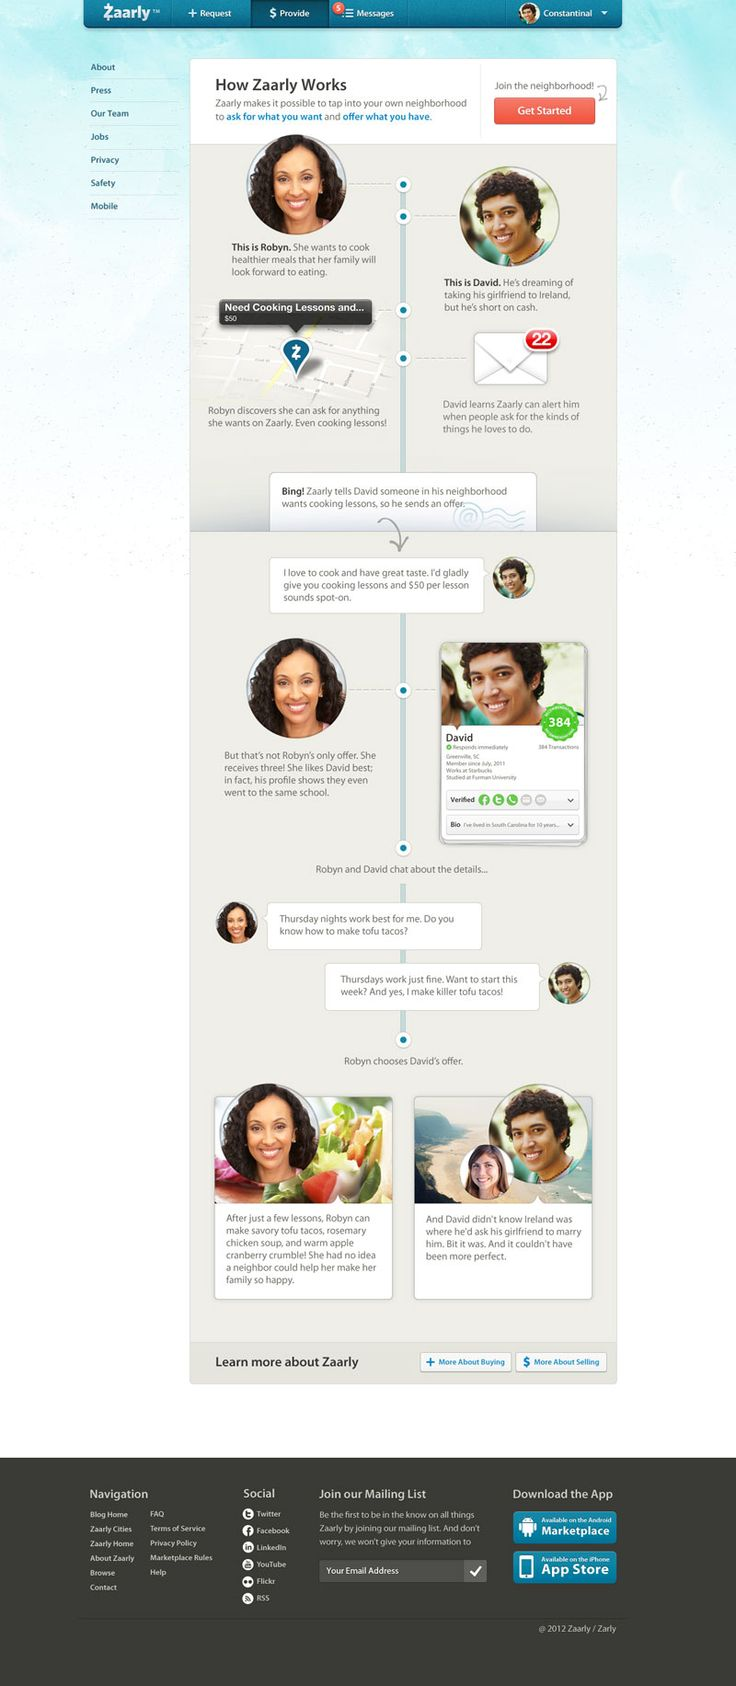 Timeline #ui similar to Facebook, trending in 2012